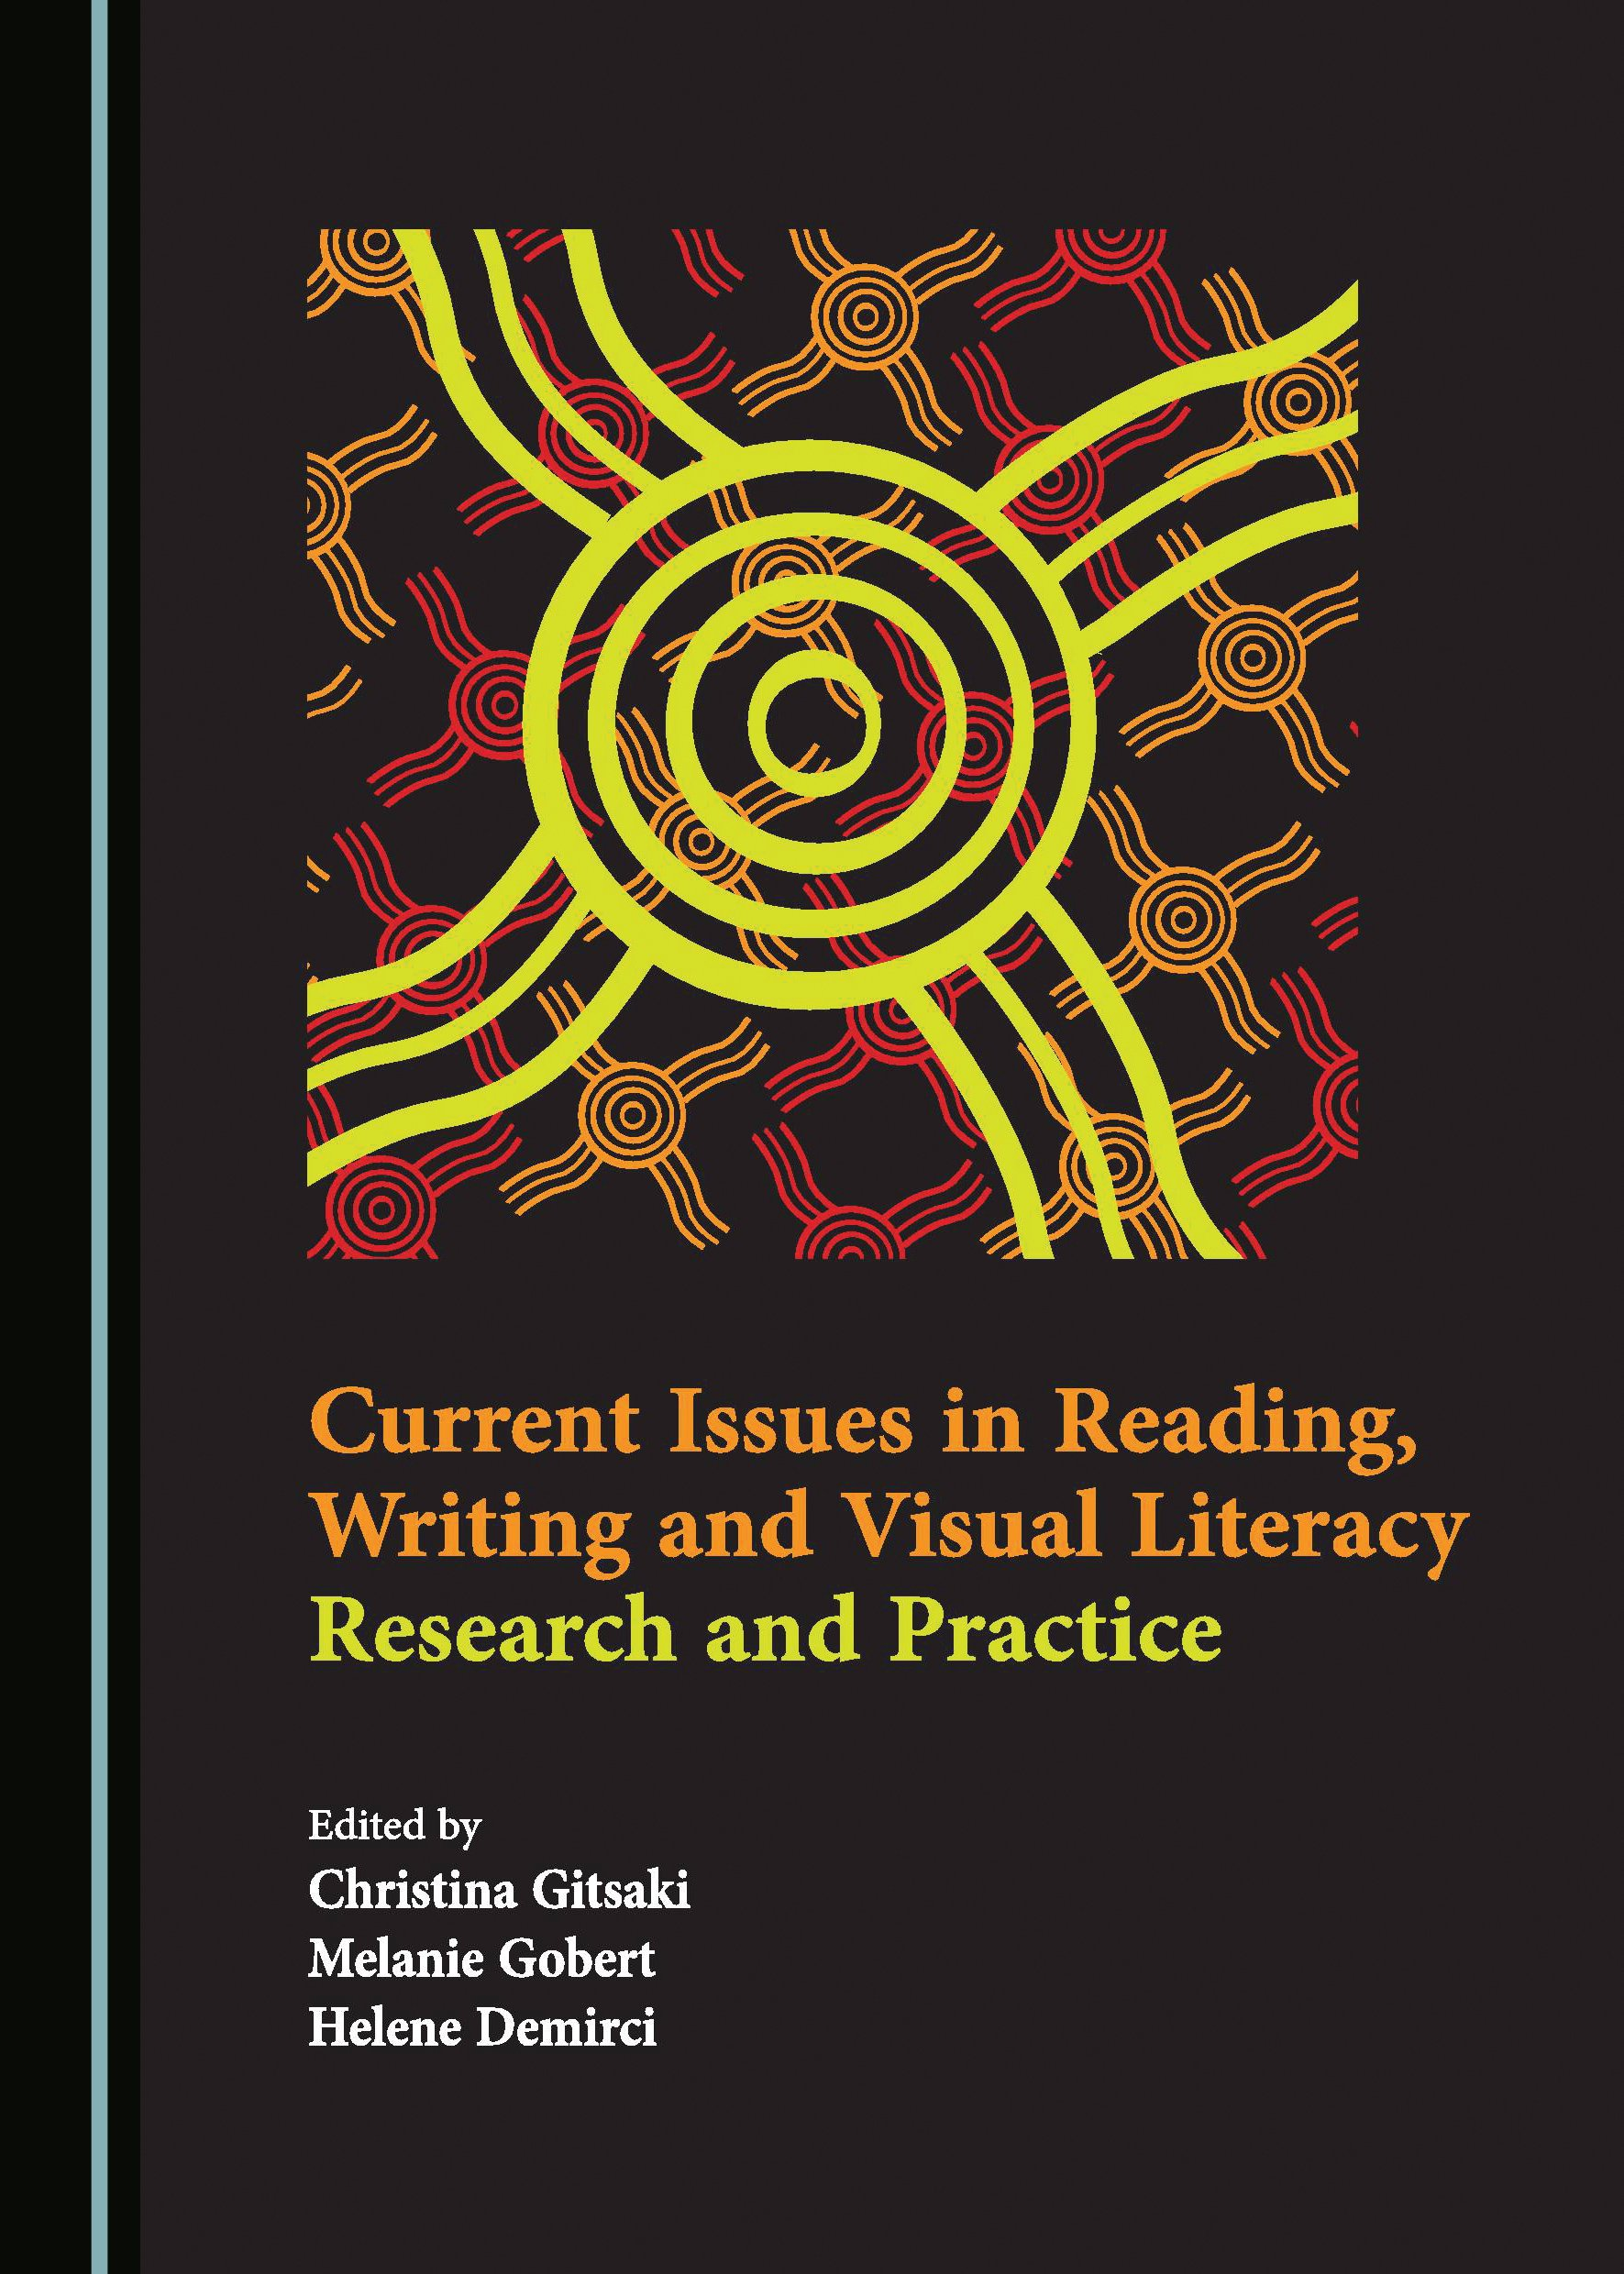 Current Issues in Reading, Writing and Visual Literacy: Research and Practice